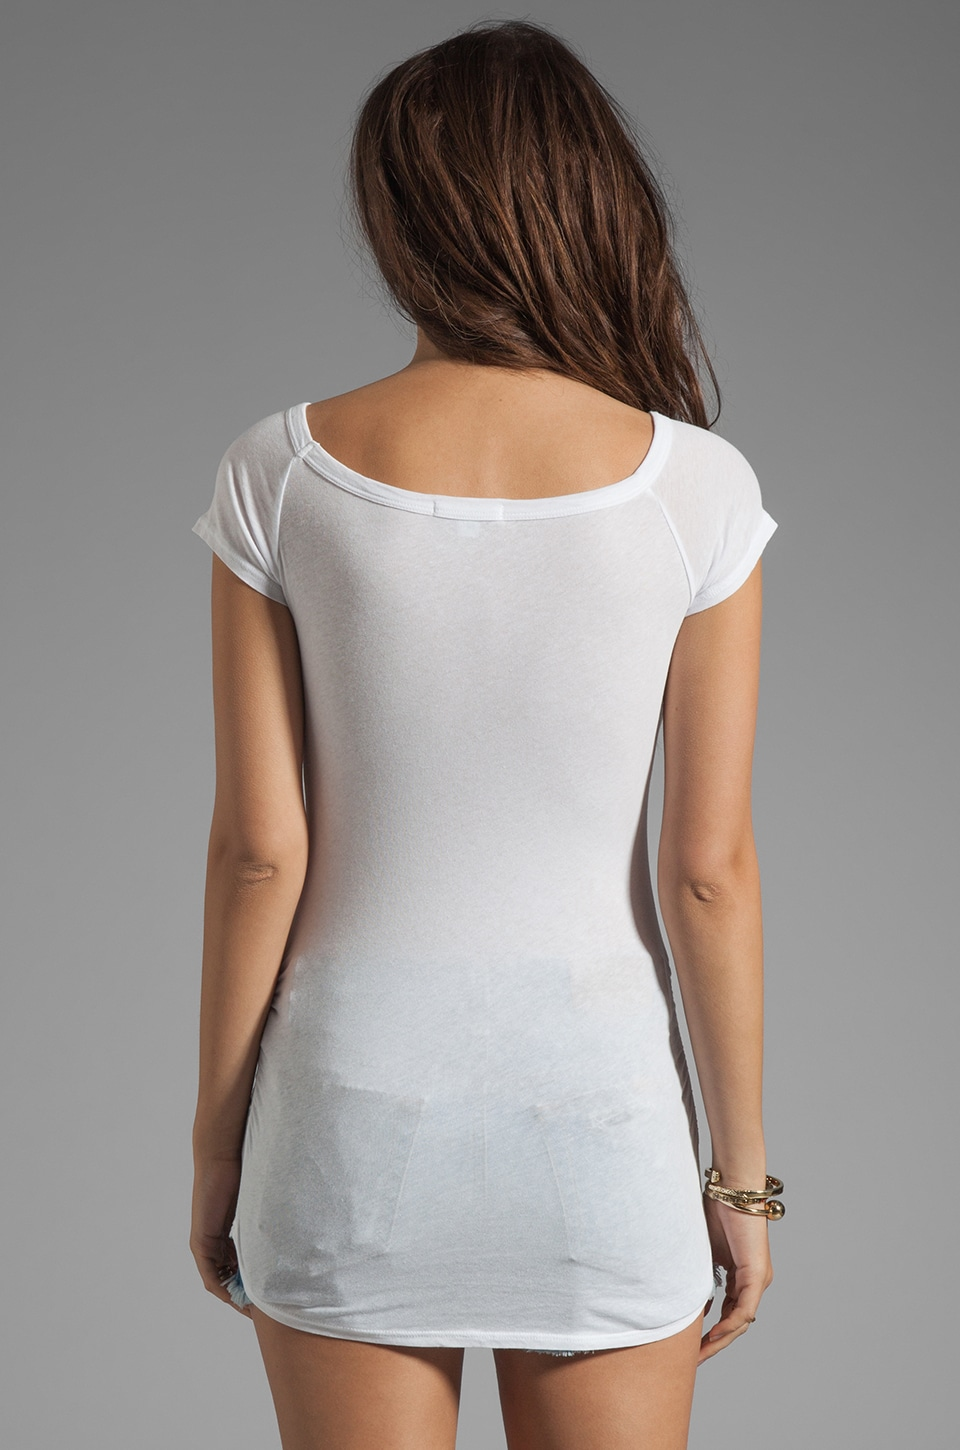 James Perse Bare Shoulder T in White